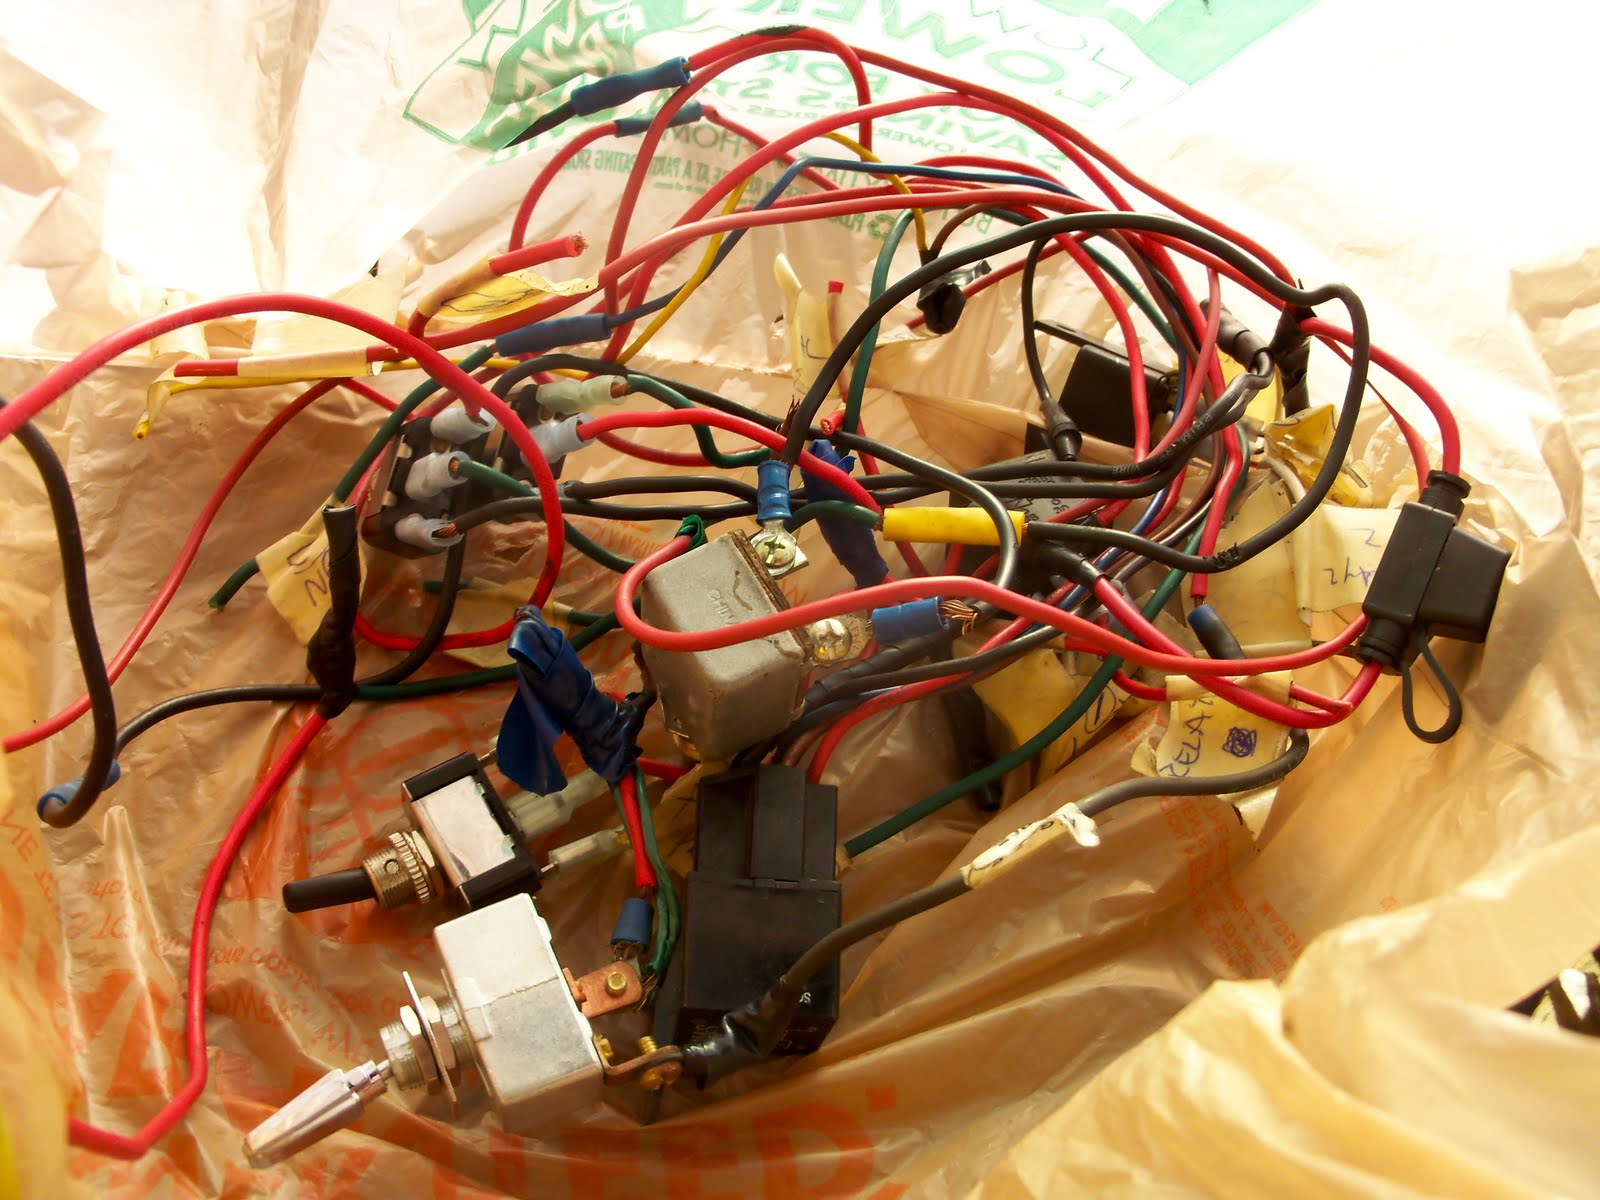 Ziptied Z Wiring 1o1 Scary Electrical It Was